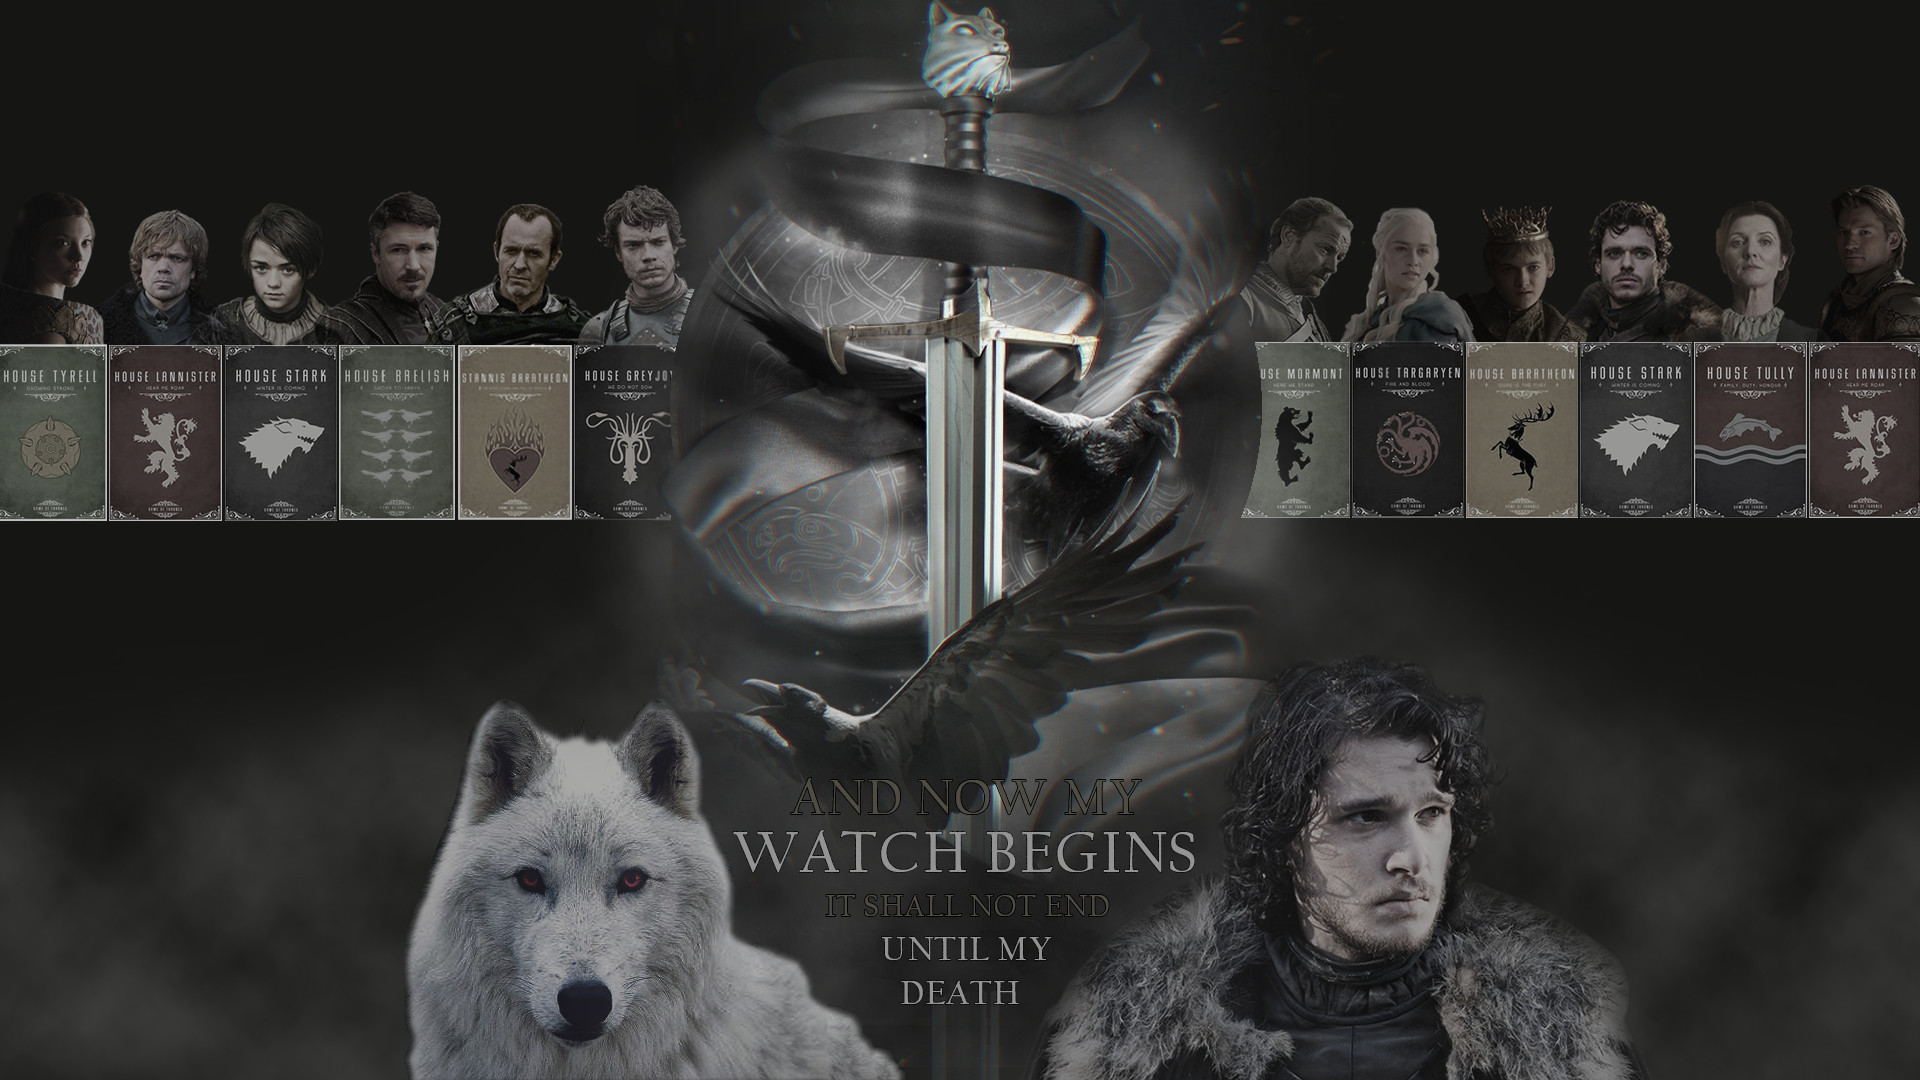 Download Game Of Thrones Season 3 Movie Wallpaper pictures in high 1920x1080